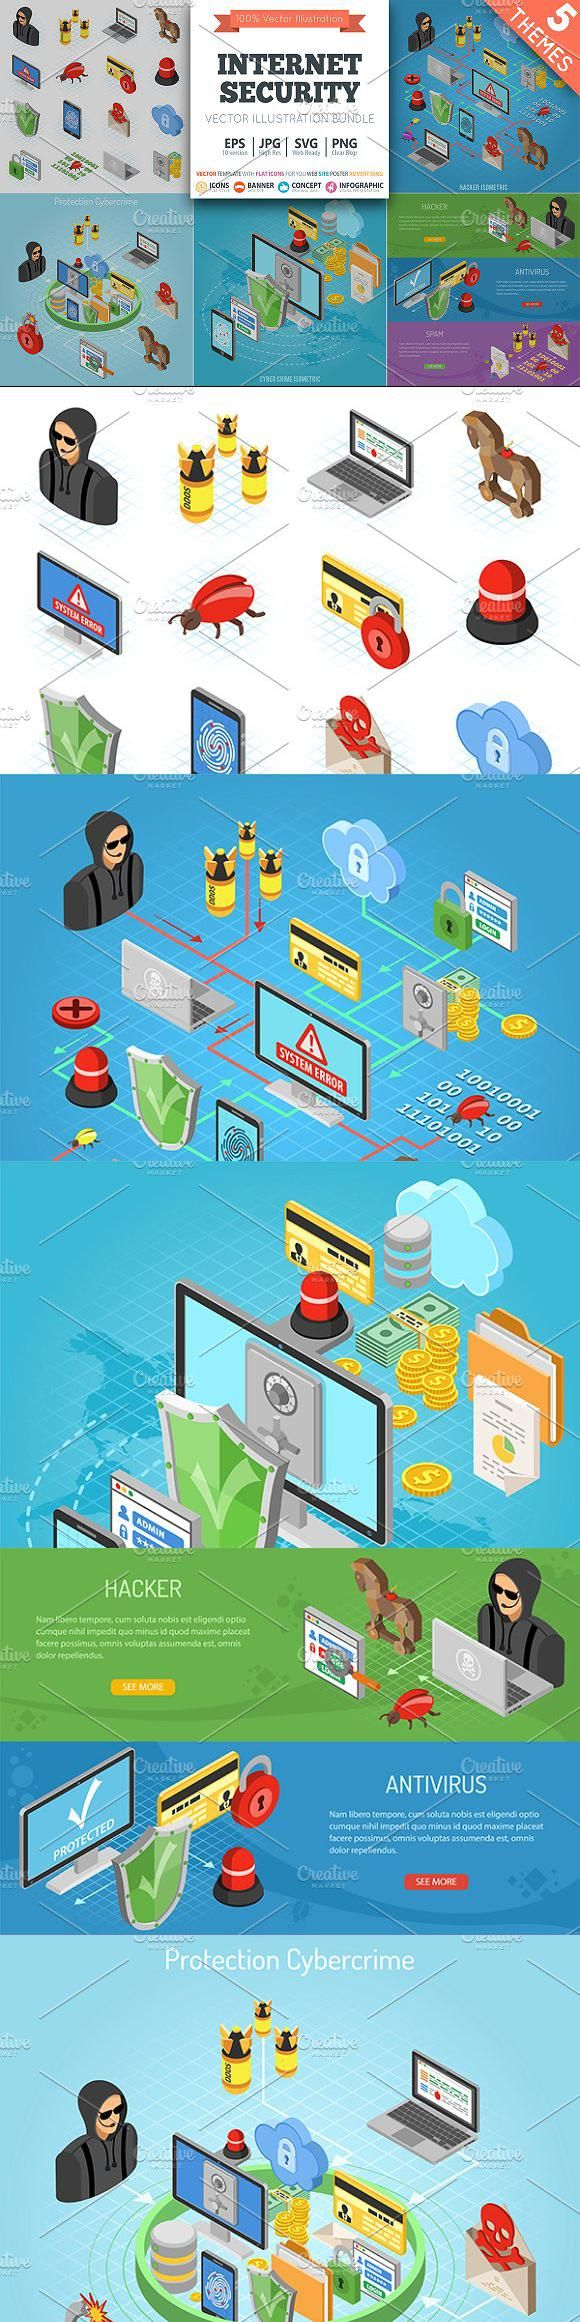 Internet Security Isometric Theme #icon #technology #IconDesign #TechnologyIcons #BestIcons #IconSet #creativemarket #GraphicDesign #design #graphics …